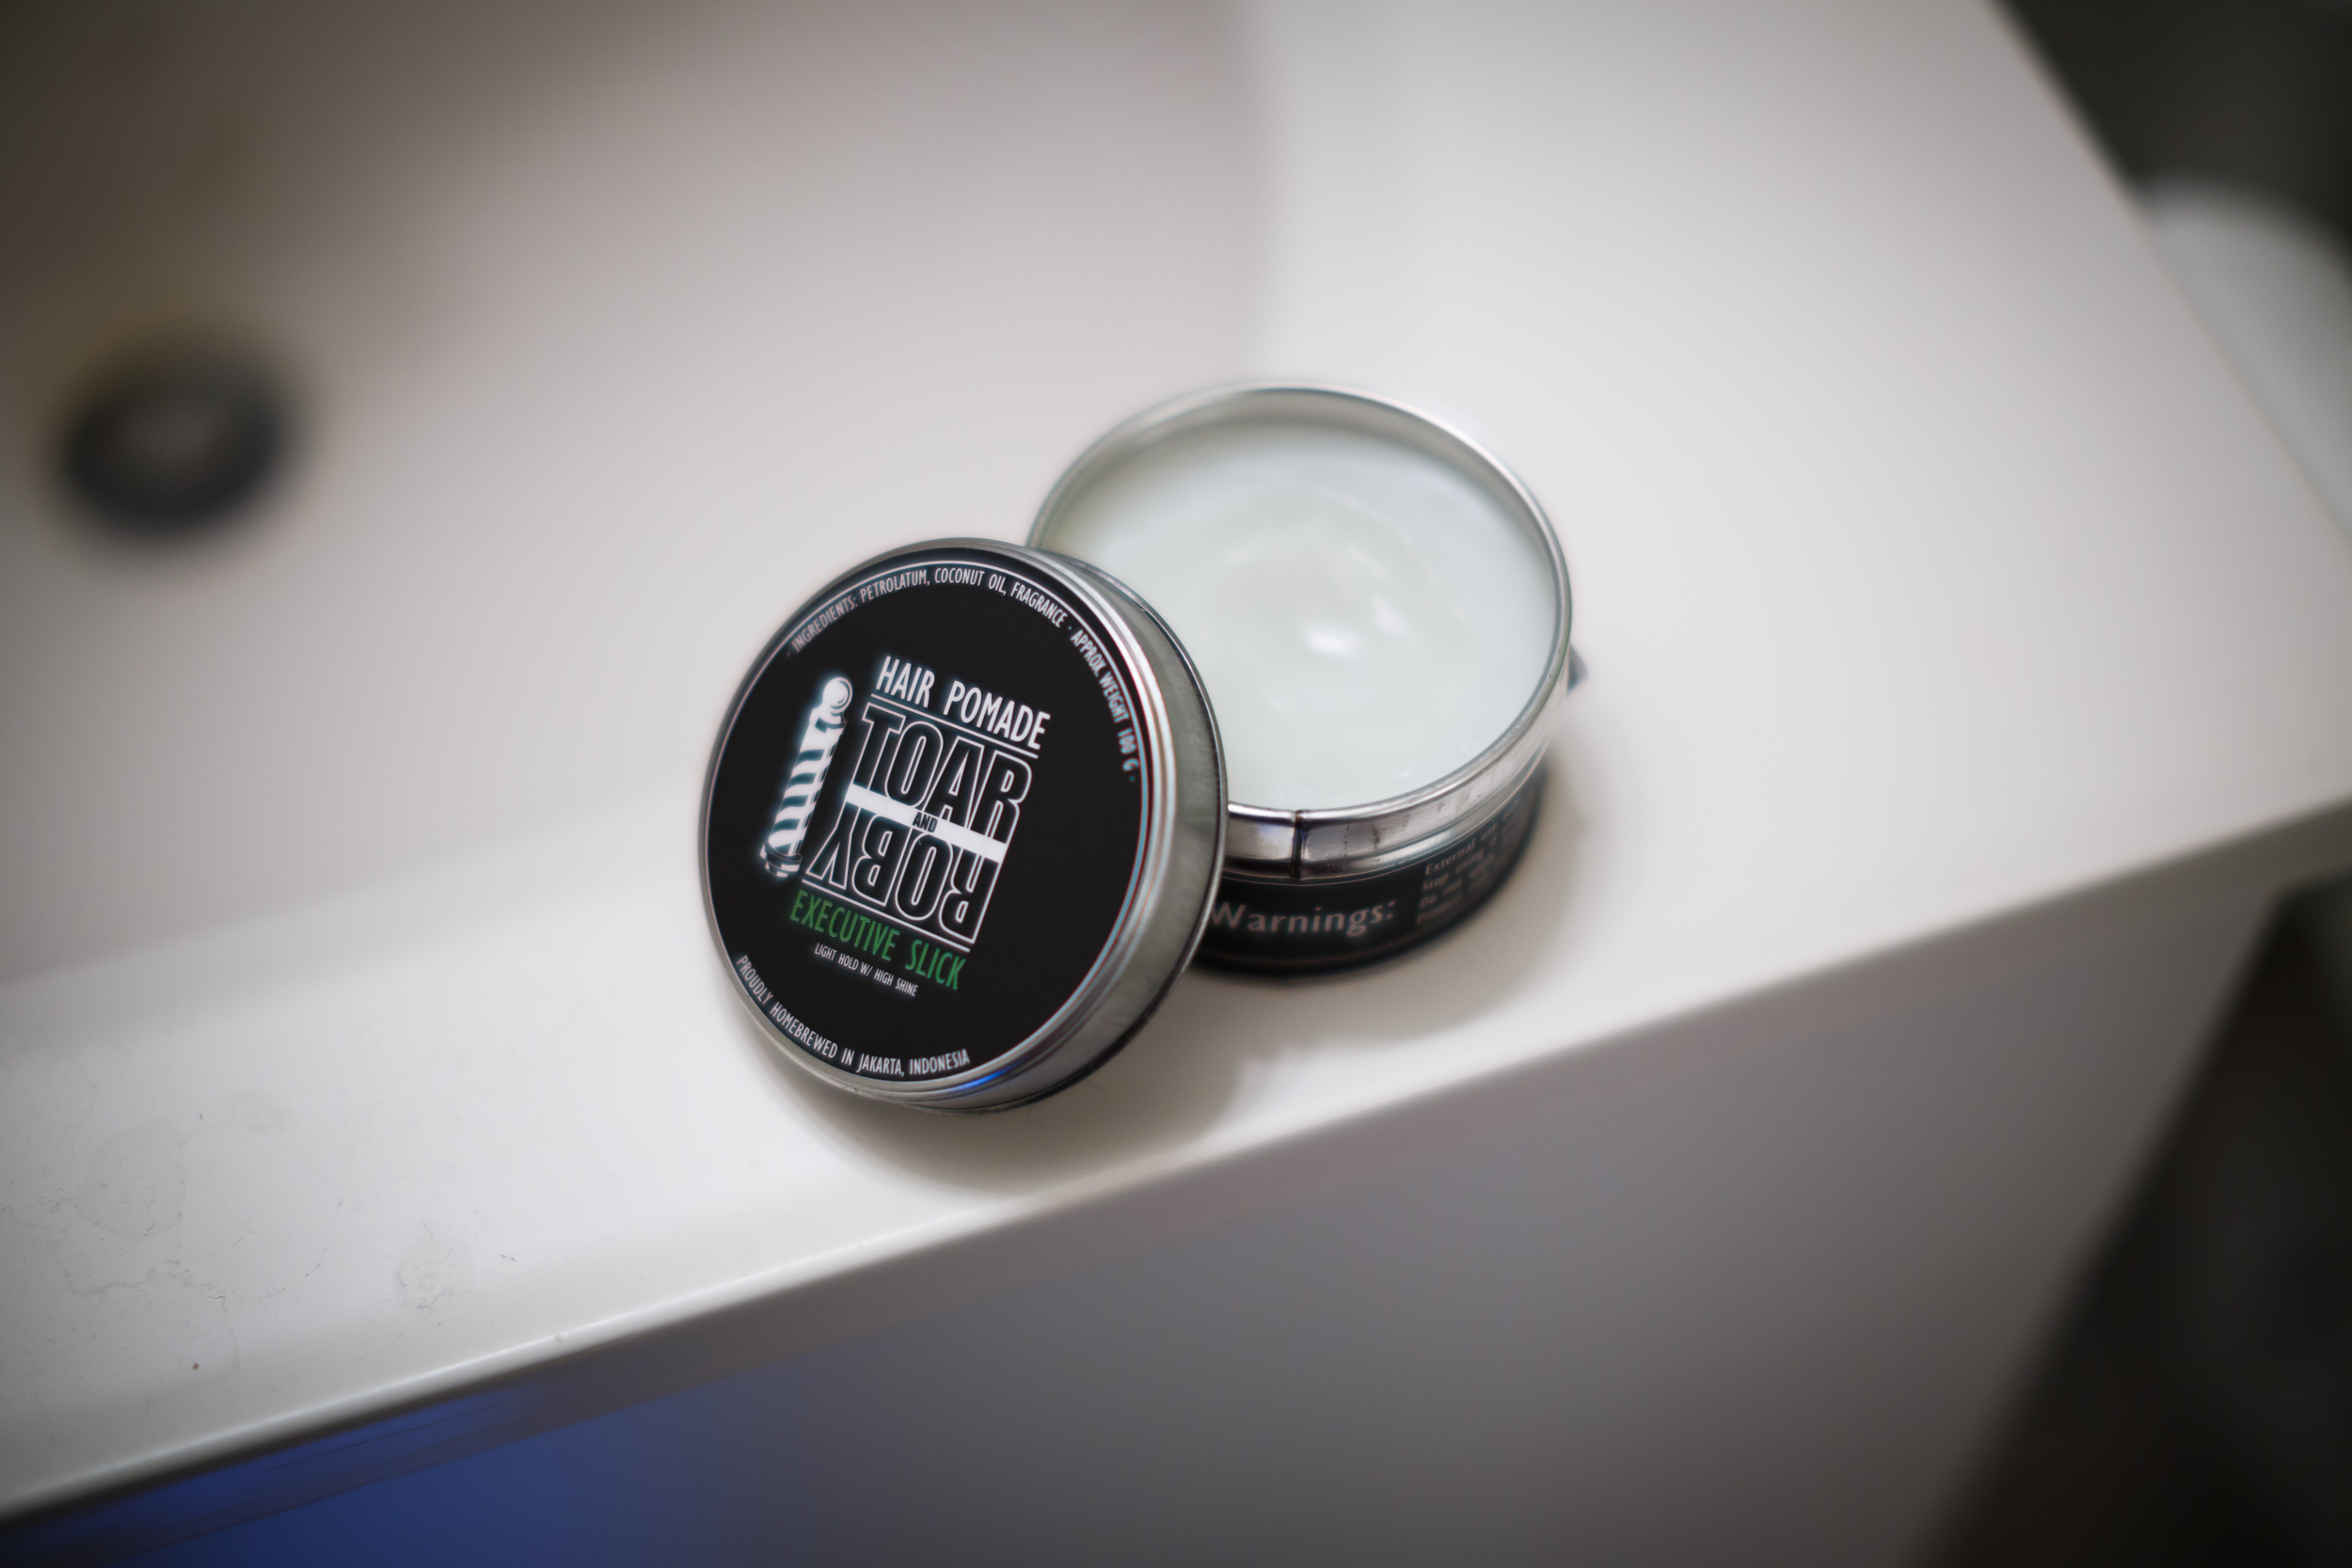 Toar and Roby Executive Slick Hair Pomade The Pomp Pompadour Oil-Based Oil Based Grease Light Hold High Shine Jar Tin Can Opened Product Inside